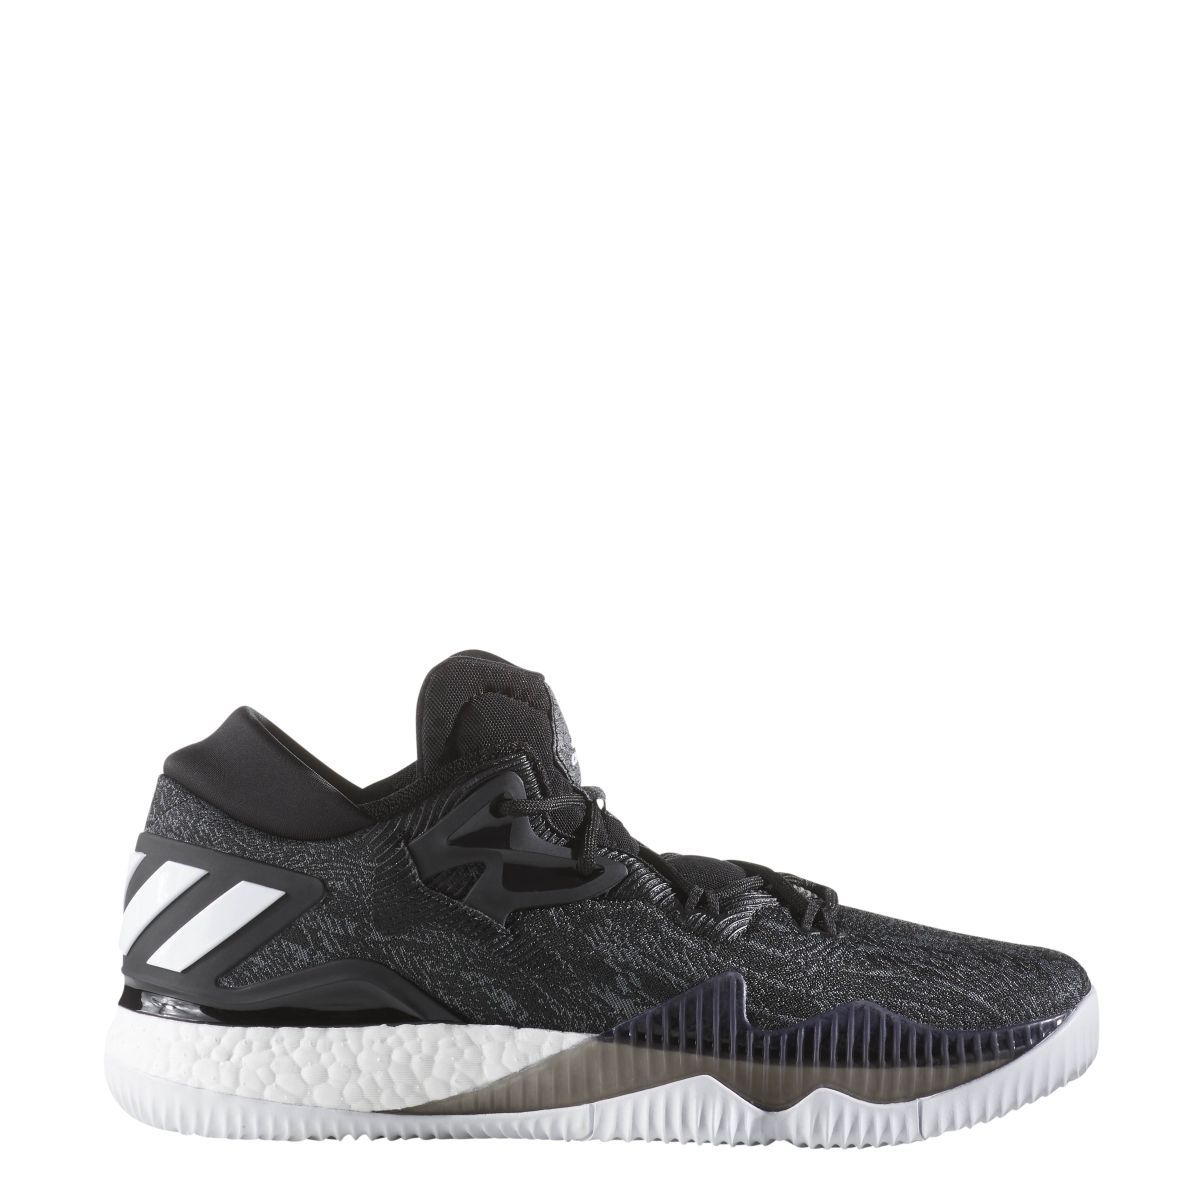 9f67707a970 Mens Adidas Crazylight Boost Low Black Basketball Sneakers Shoes B42722  Sz11-14